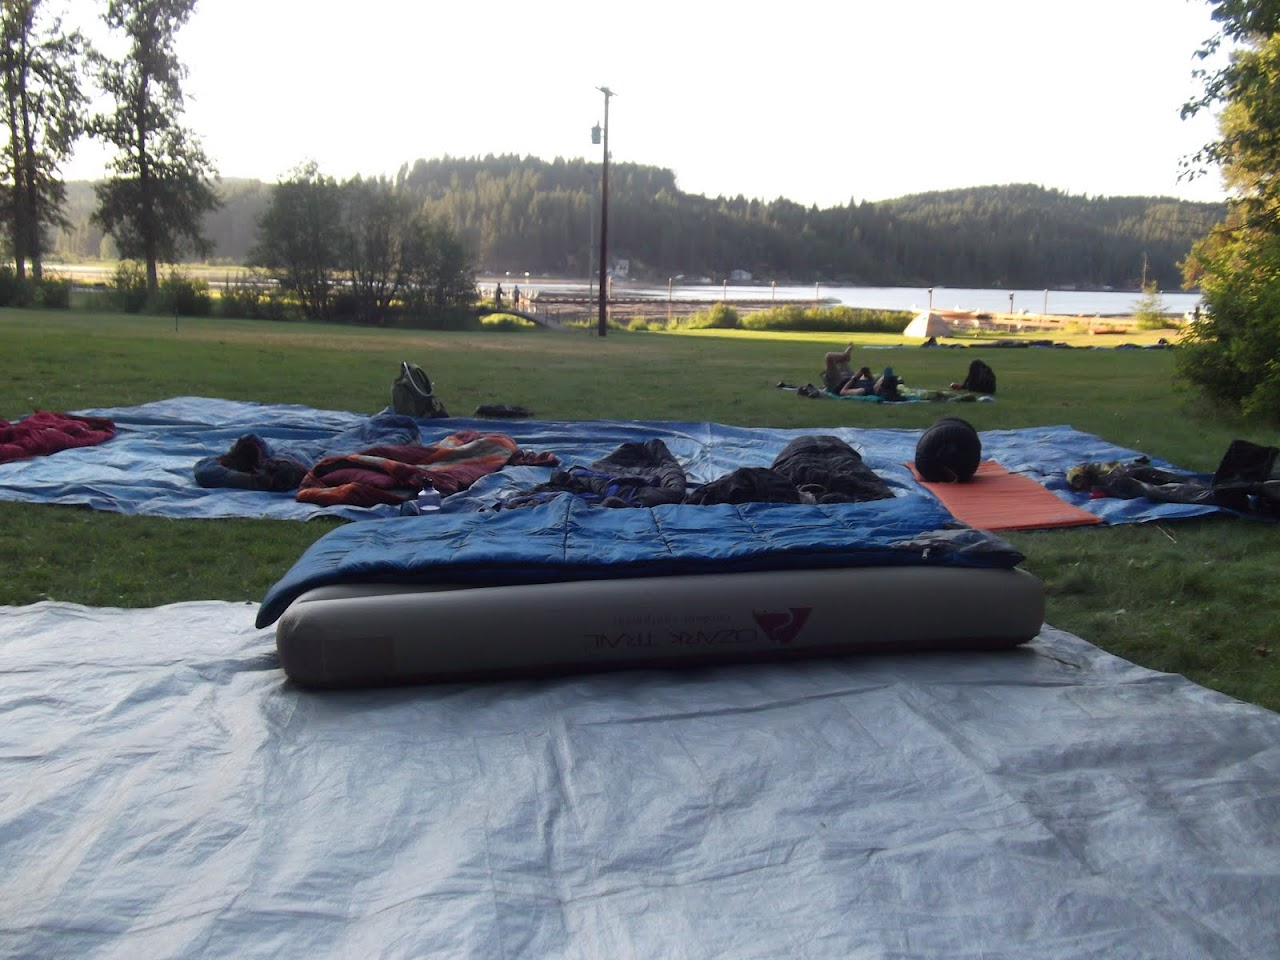 Our beds for the night